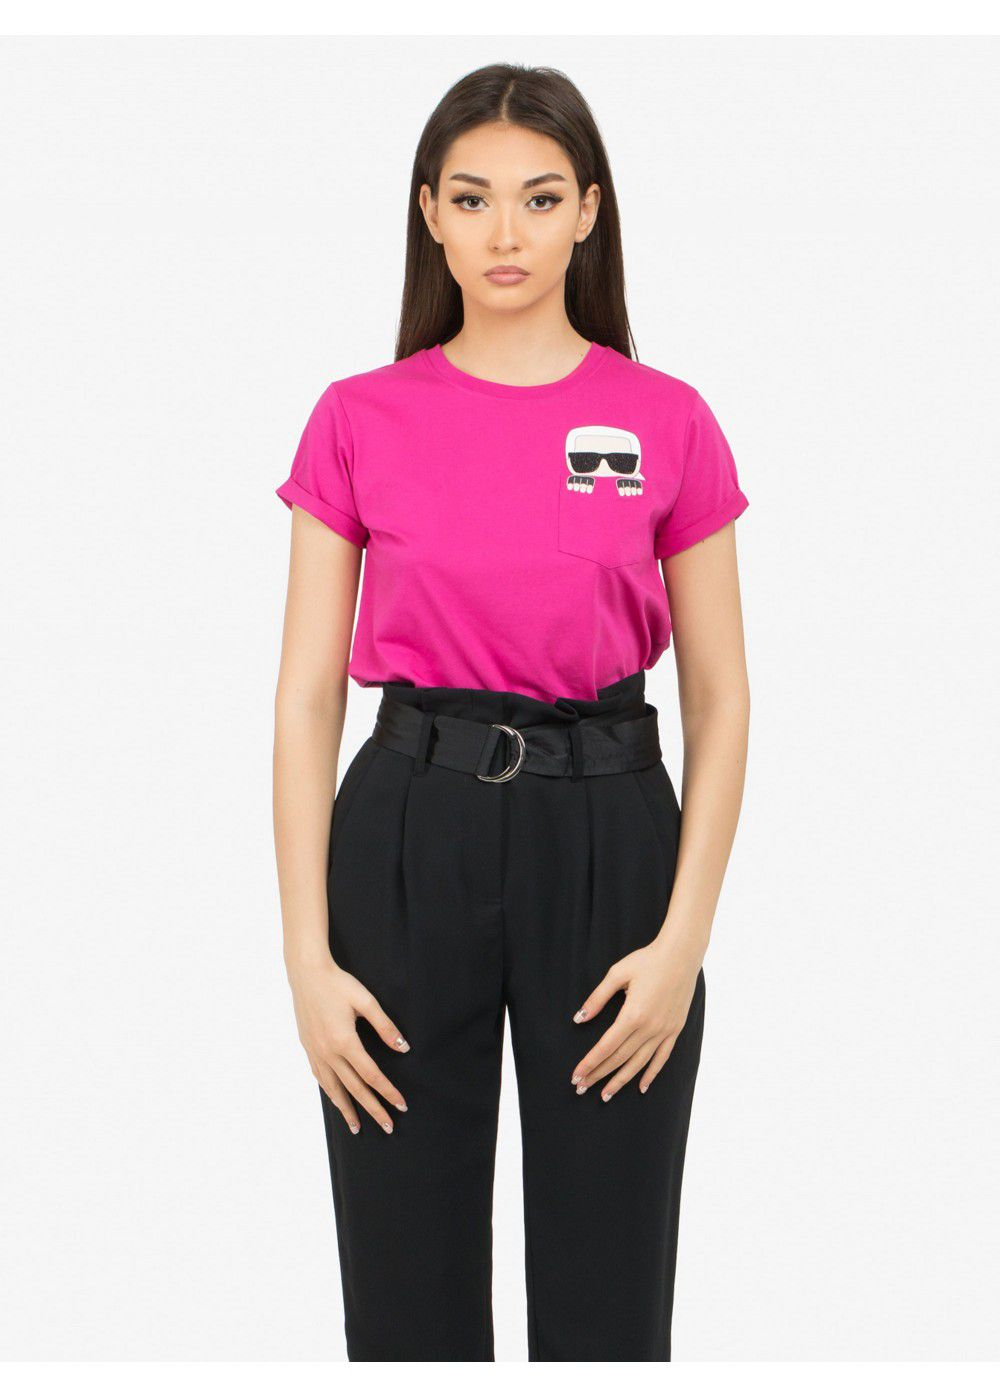 Karl Lagerfeld Ikonik Pocket T-Shirt in Fuschia